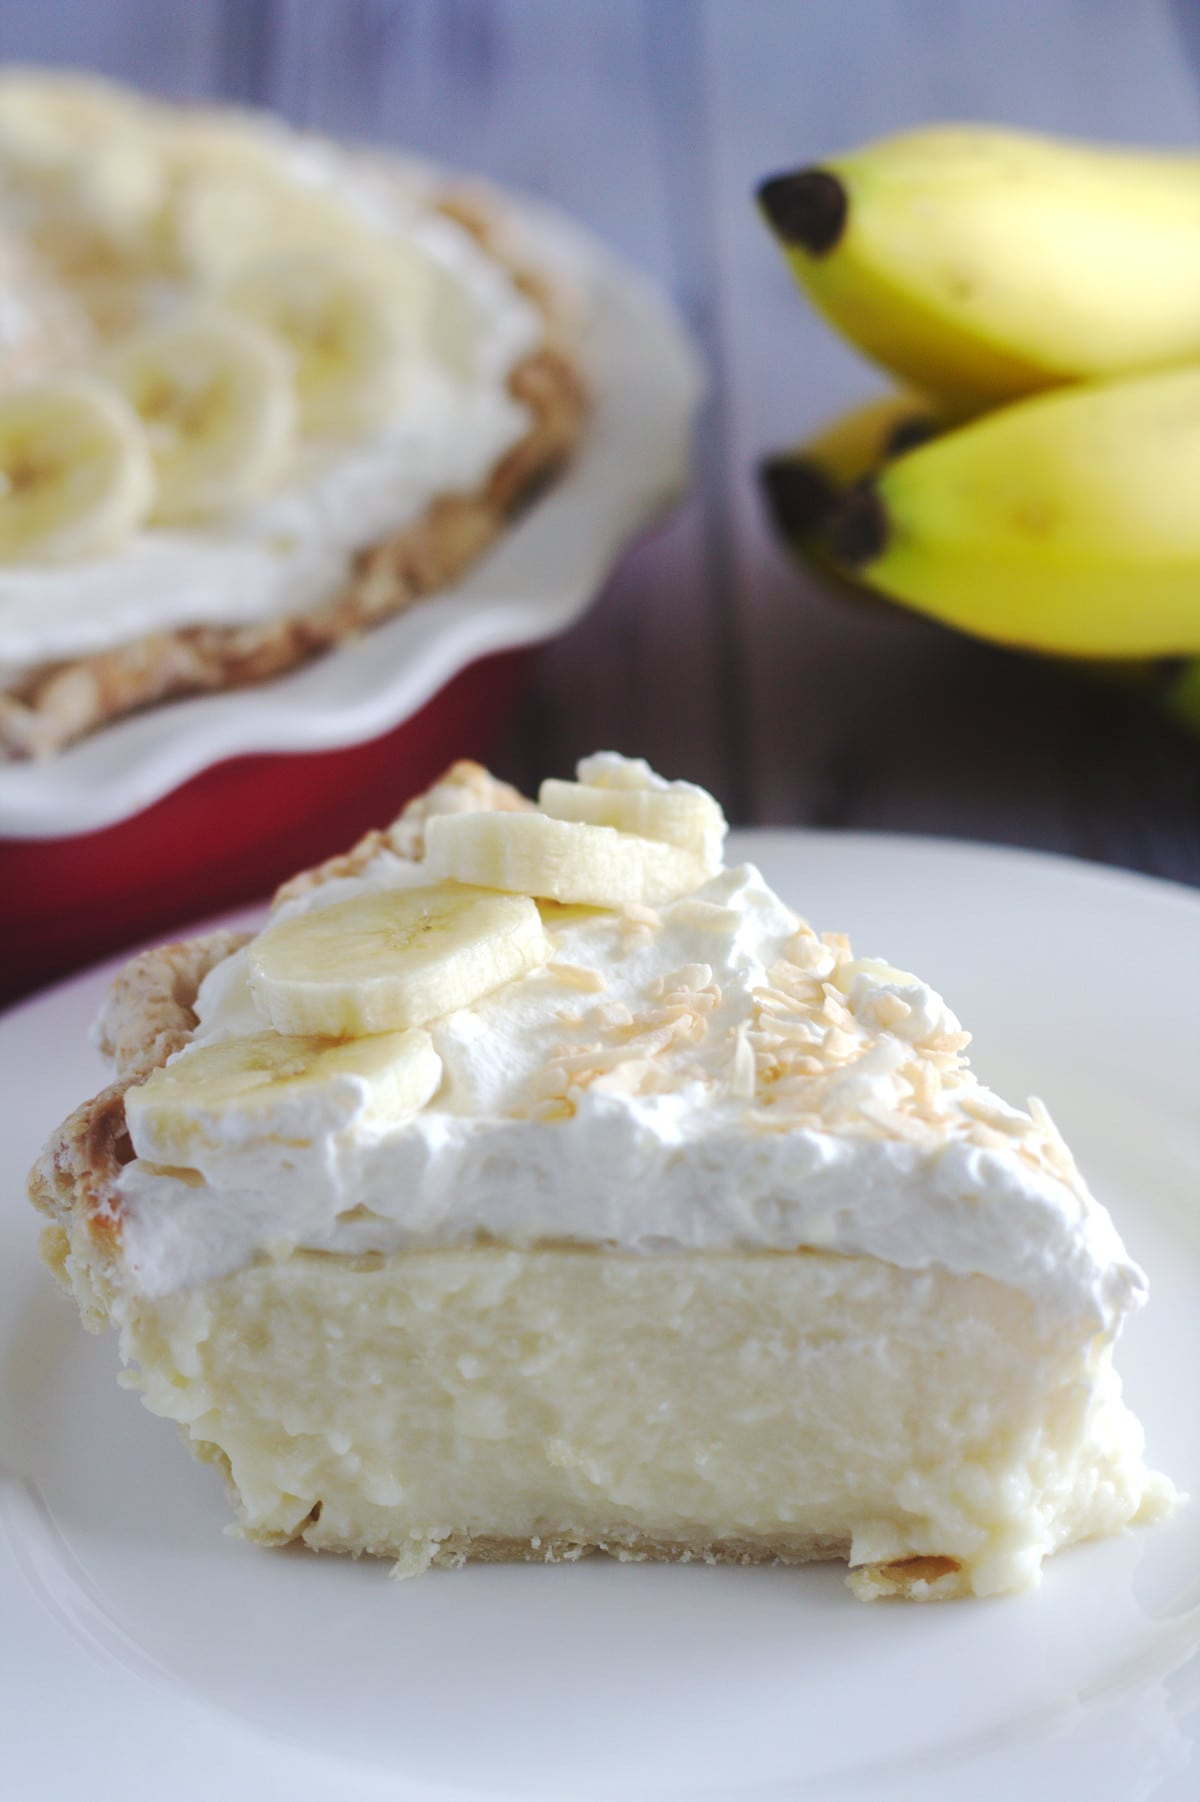 A slice of pie on a plate.  Bananas and the rest of the pie are in the background.